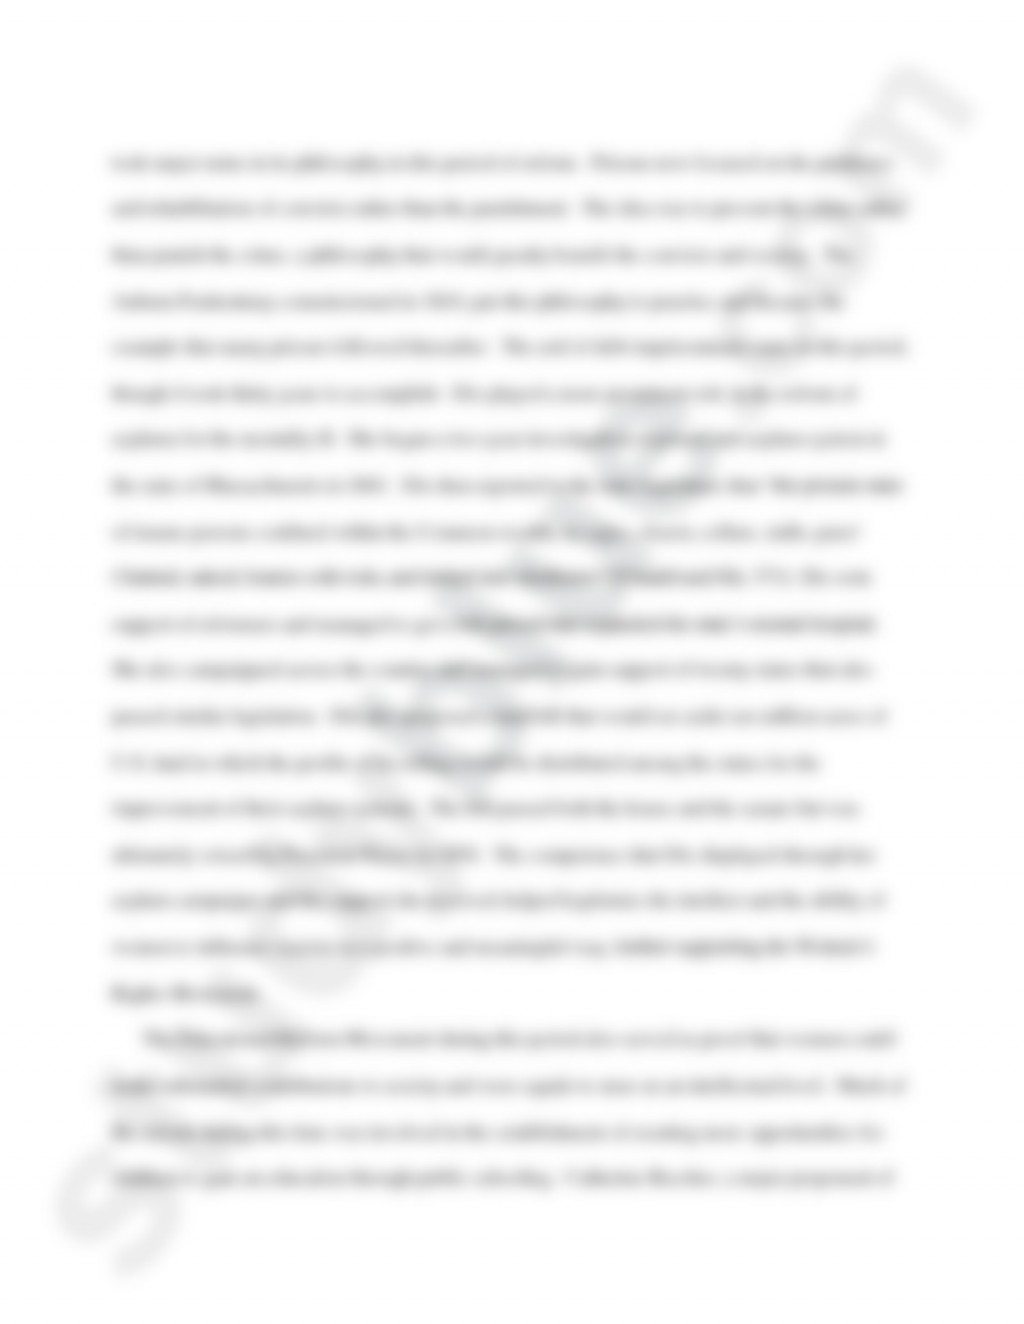 014 Essay On Women Preview2 Incredible Women's Rights In India Short Empowerment Large